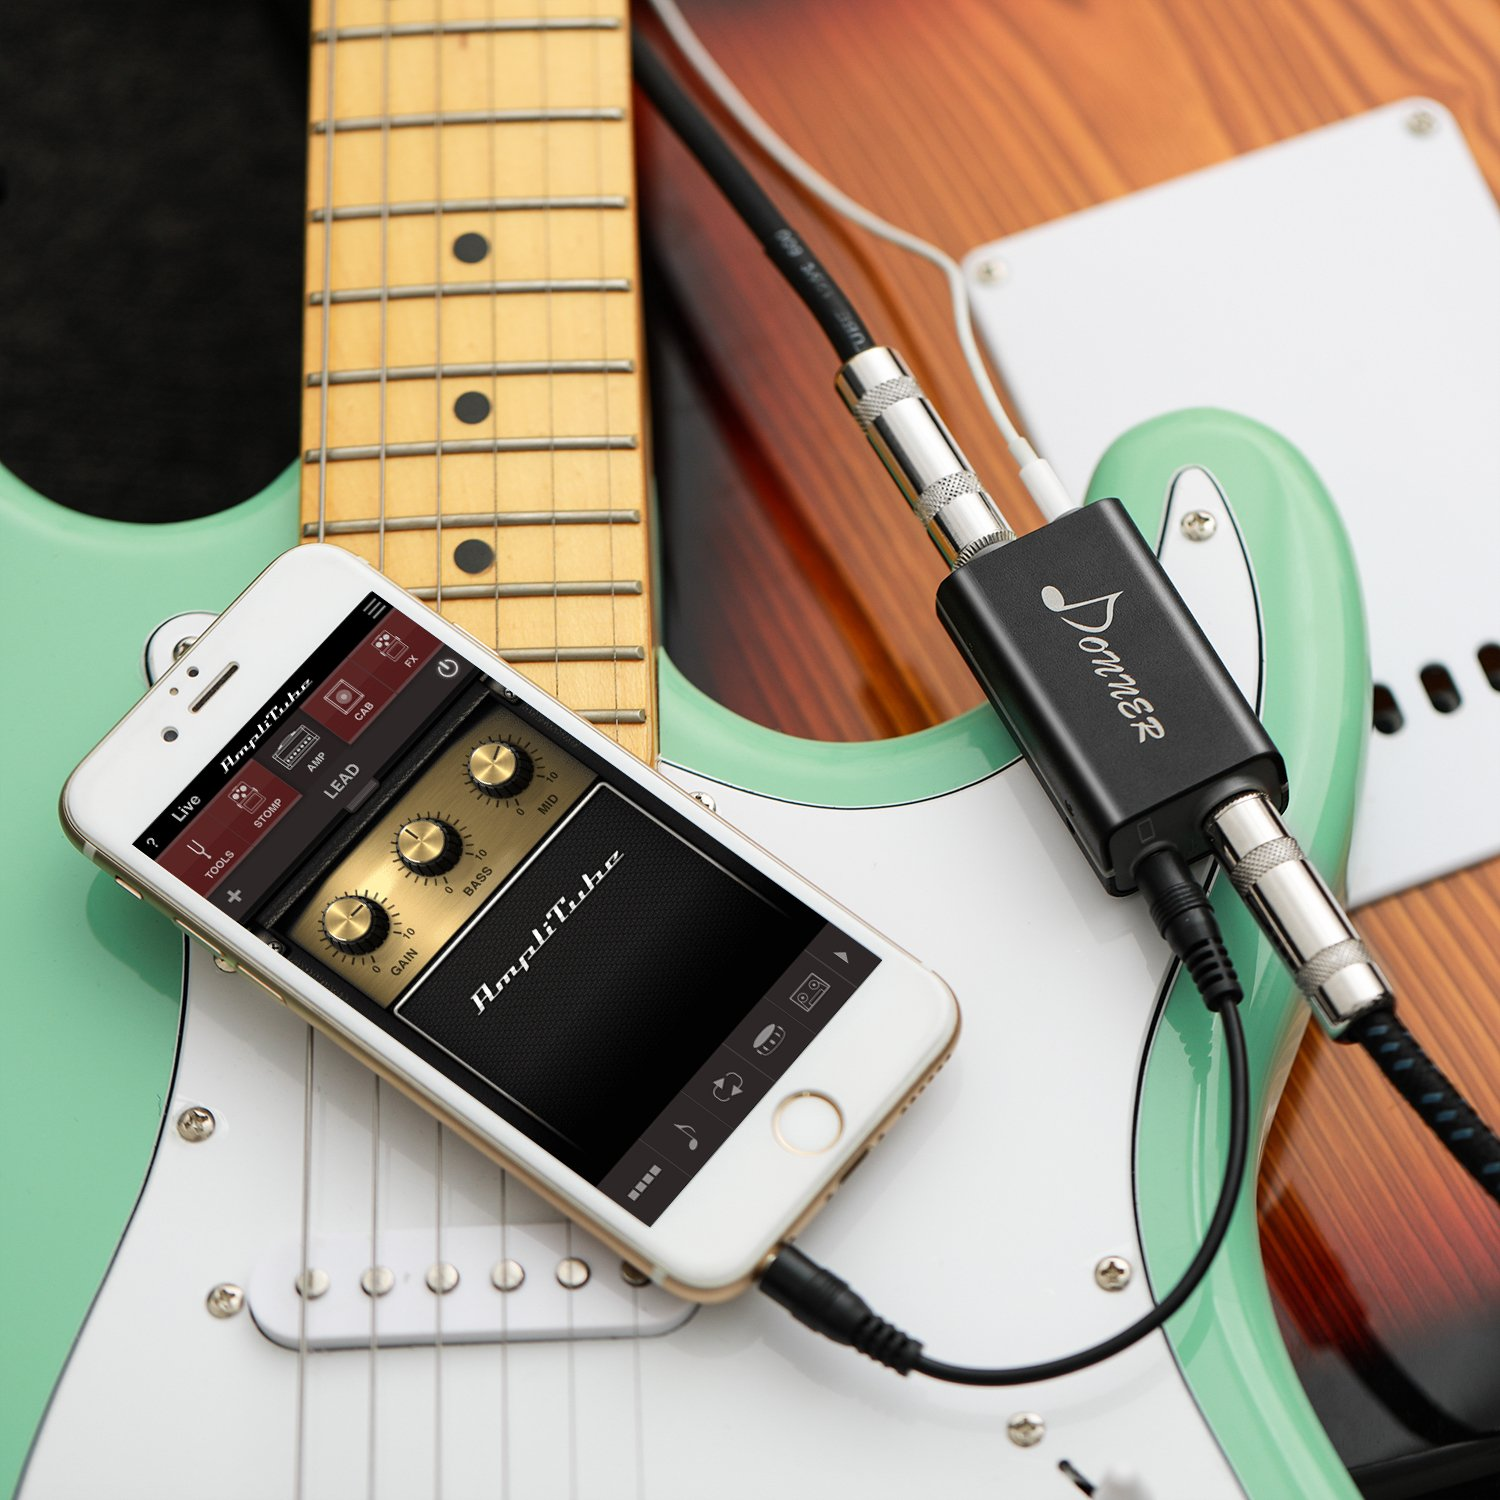 Donner DIA-1 Interfaz de Guitarra/Bajo para iphone/Ipad//Mac/IPod Touch/Android: Amazon.es: Instrumentos musicales